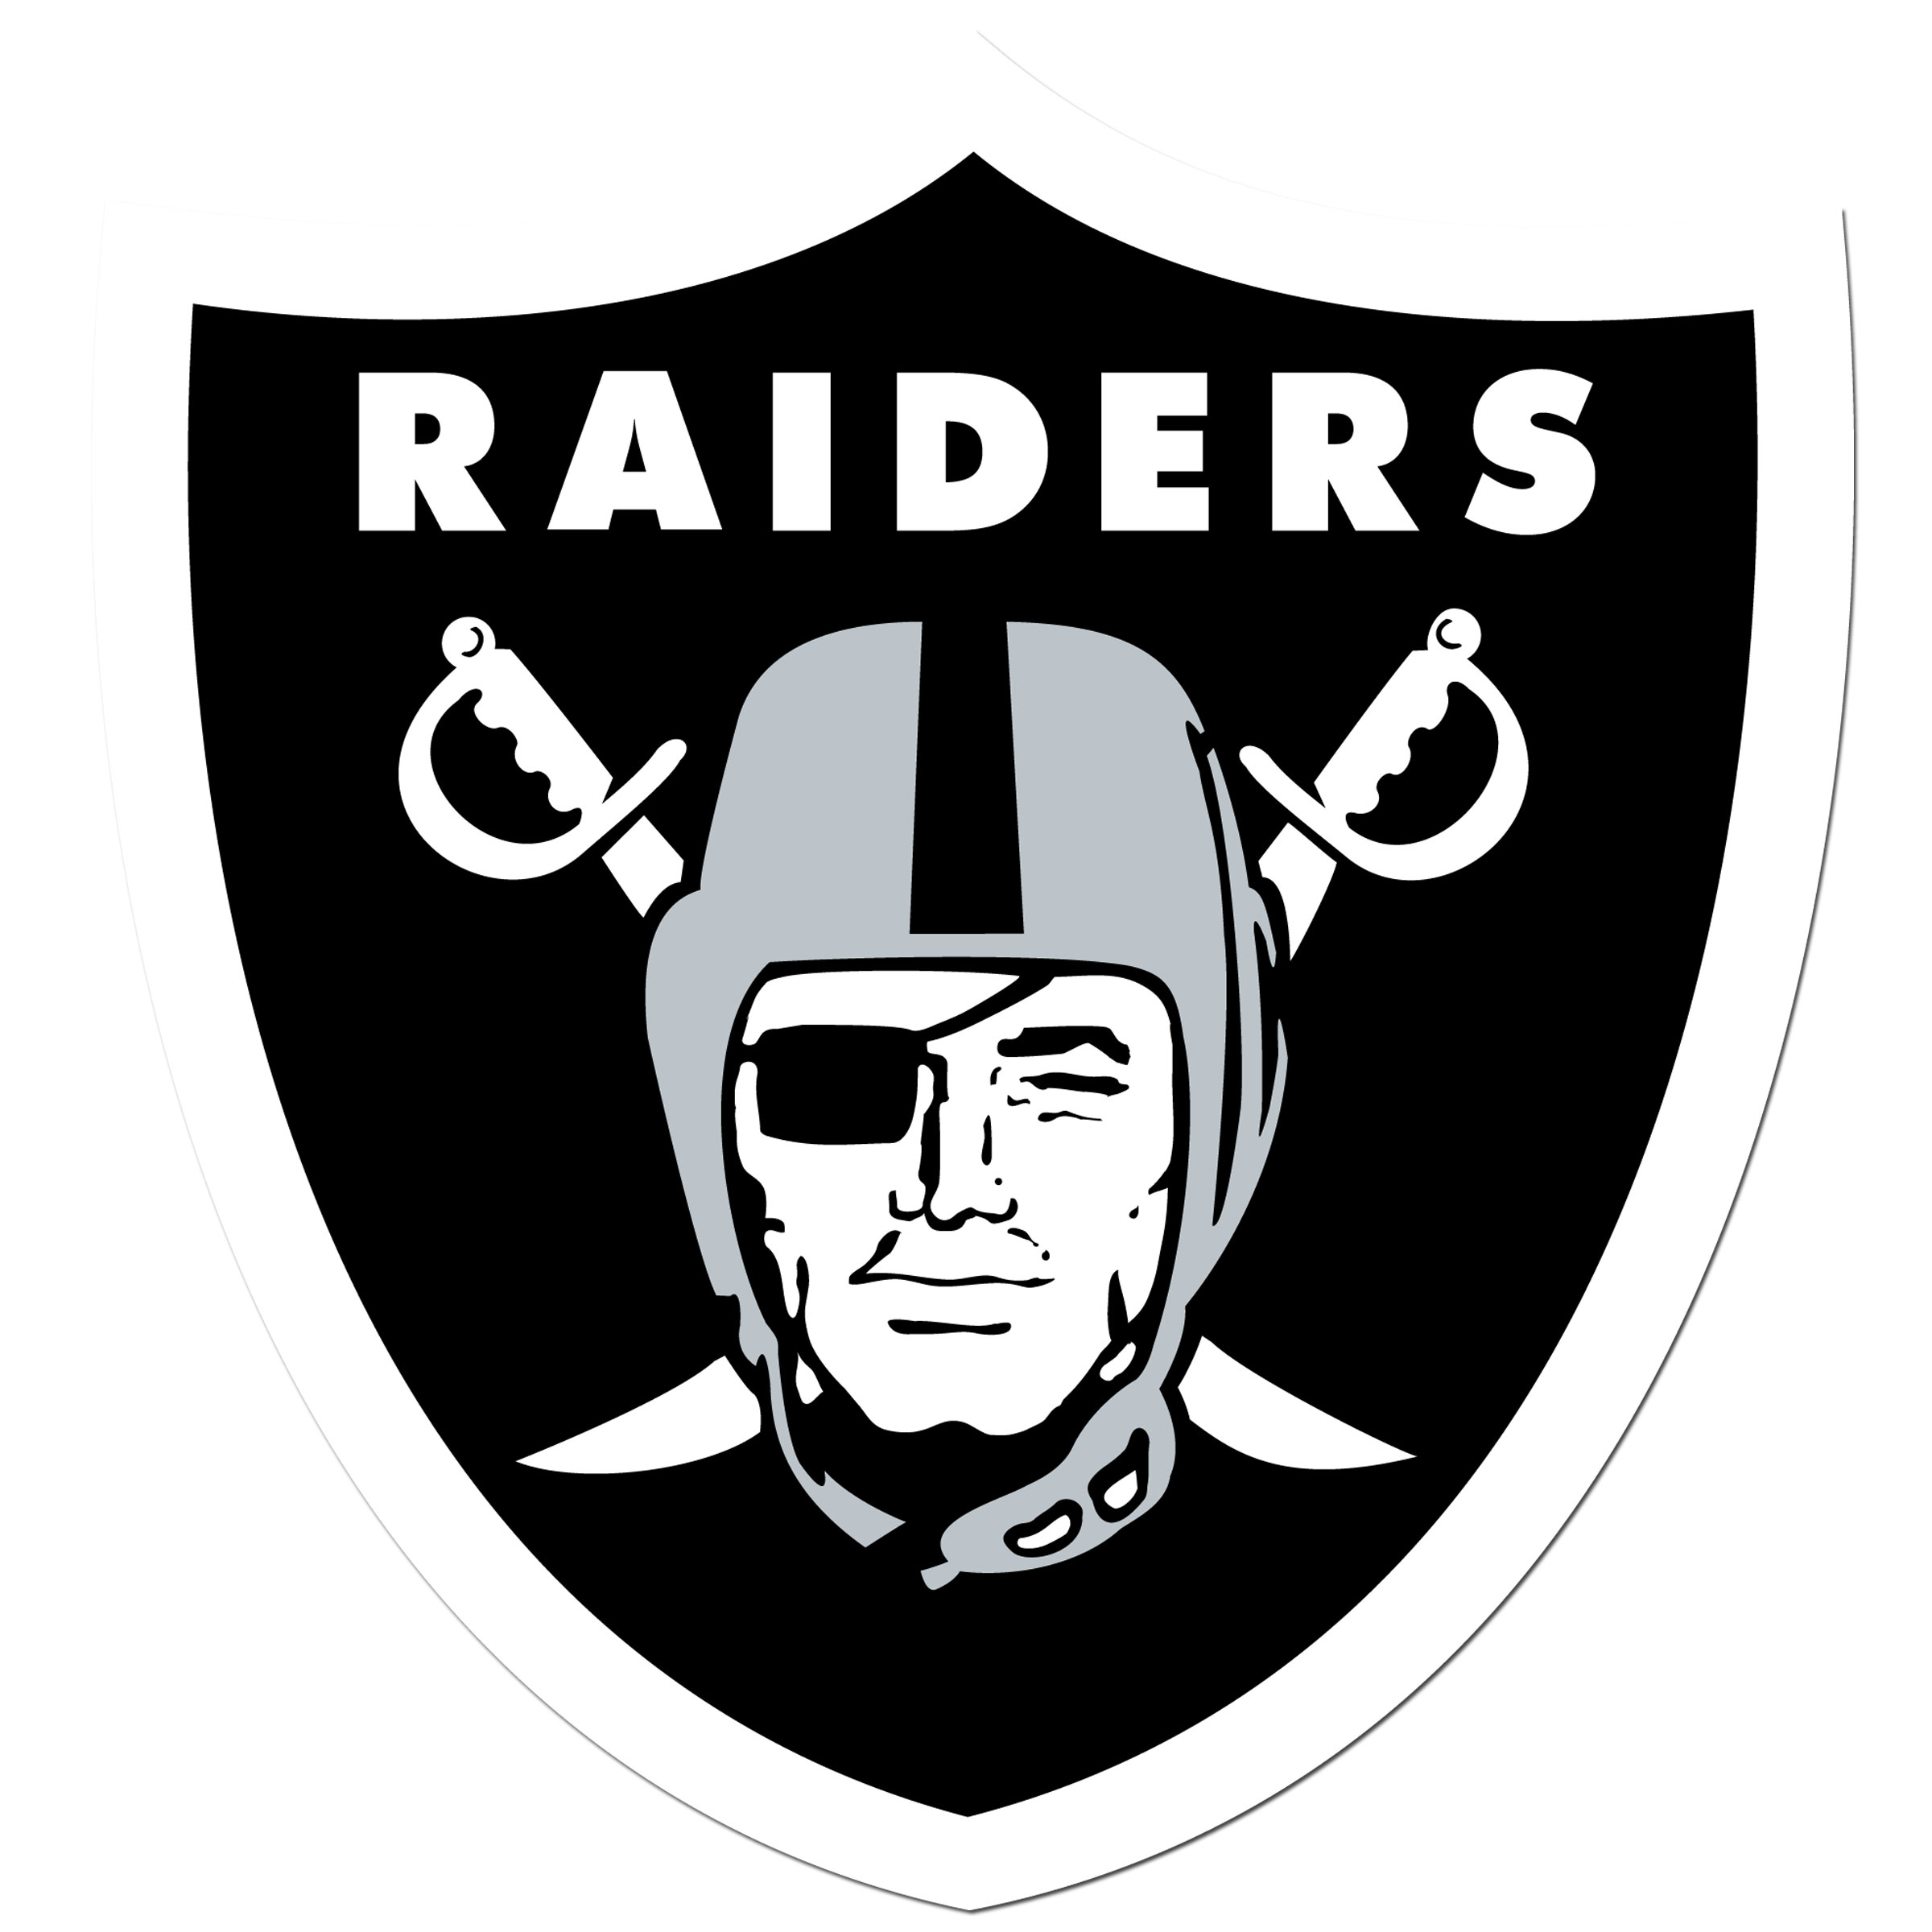 Oakland Raiders 8 inch Auto Decal - This bold, 8 inch Oakland Raiders is a great way to show off your team pride! The low tack vinyl decal is easily positioned and adjusted to make sure you get that logo in just the right spot on your vehicle. Designed to be used on the outside of the window.